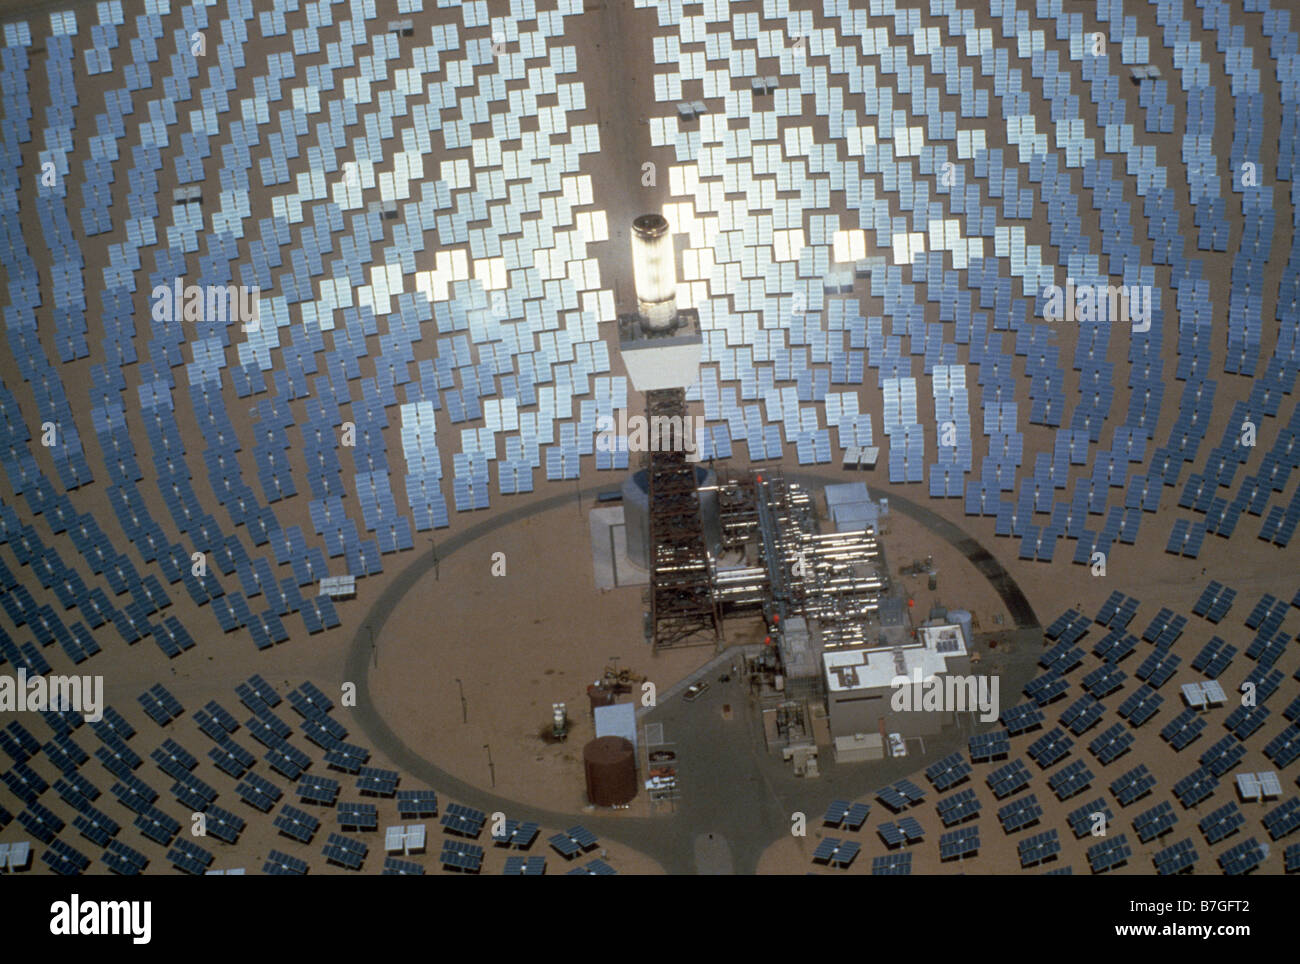 Aerial view of 1200 6x8 foot mirrors at Solar One electric power generating station, experimental, in Southern California Stock Photo